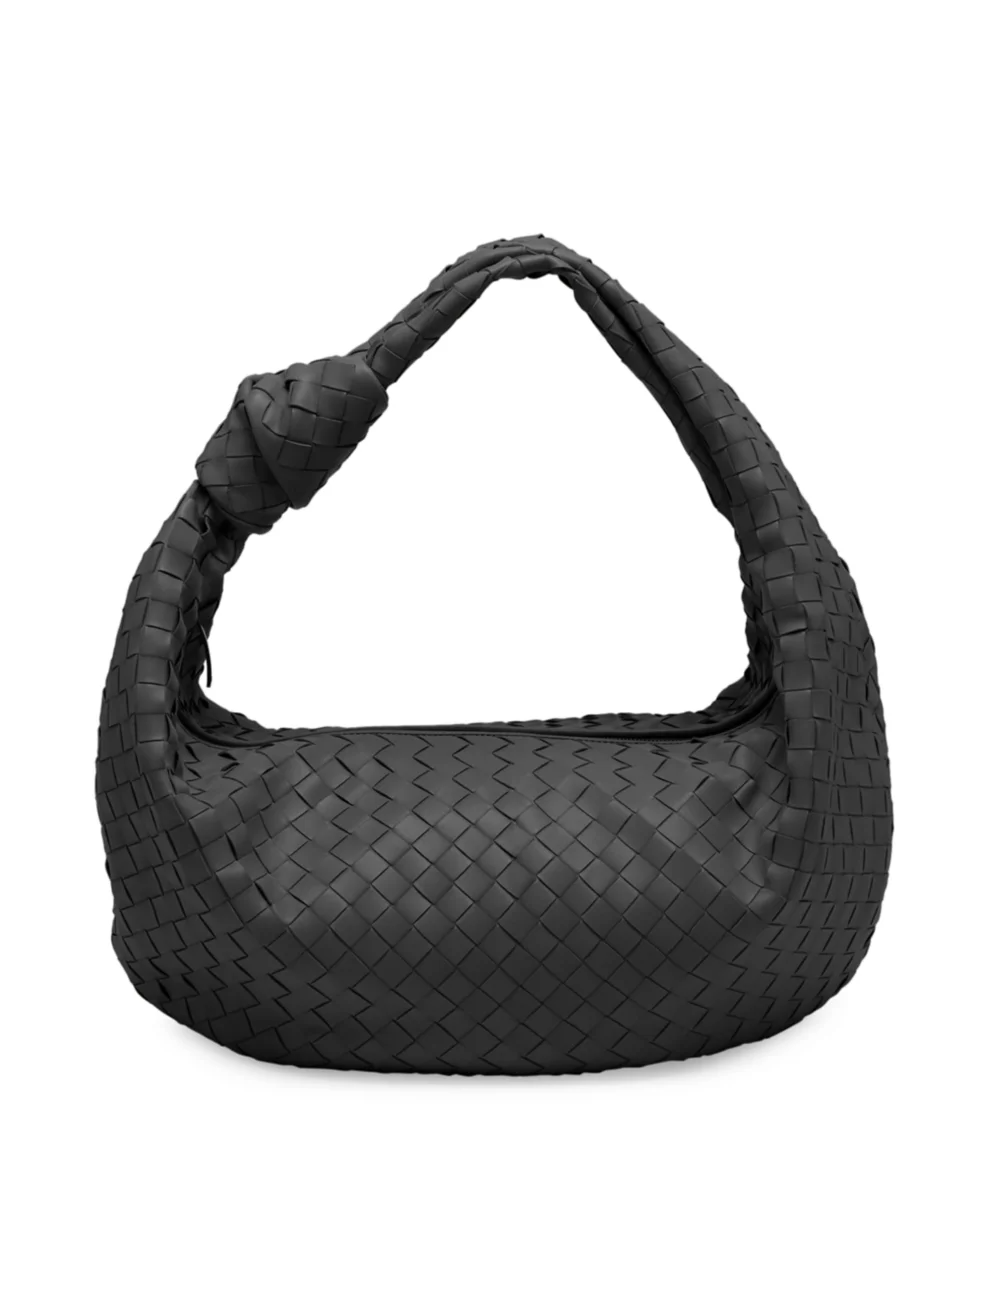 Bottega Veneta Large Jodie Shoulder Bag